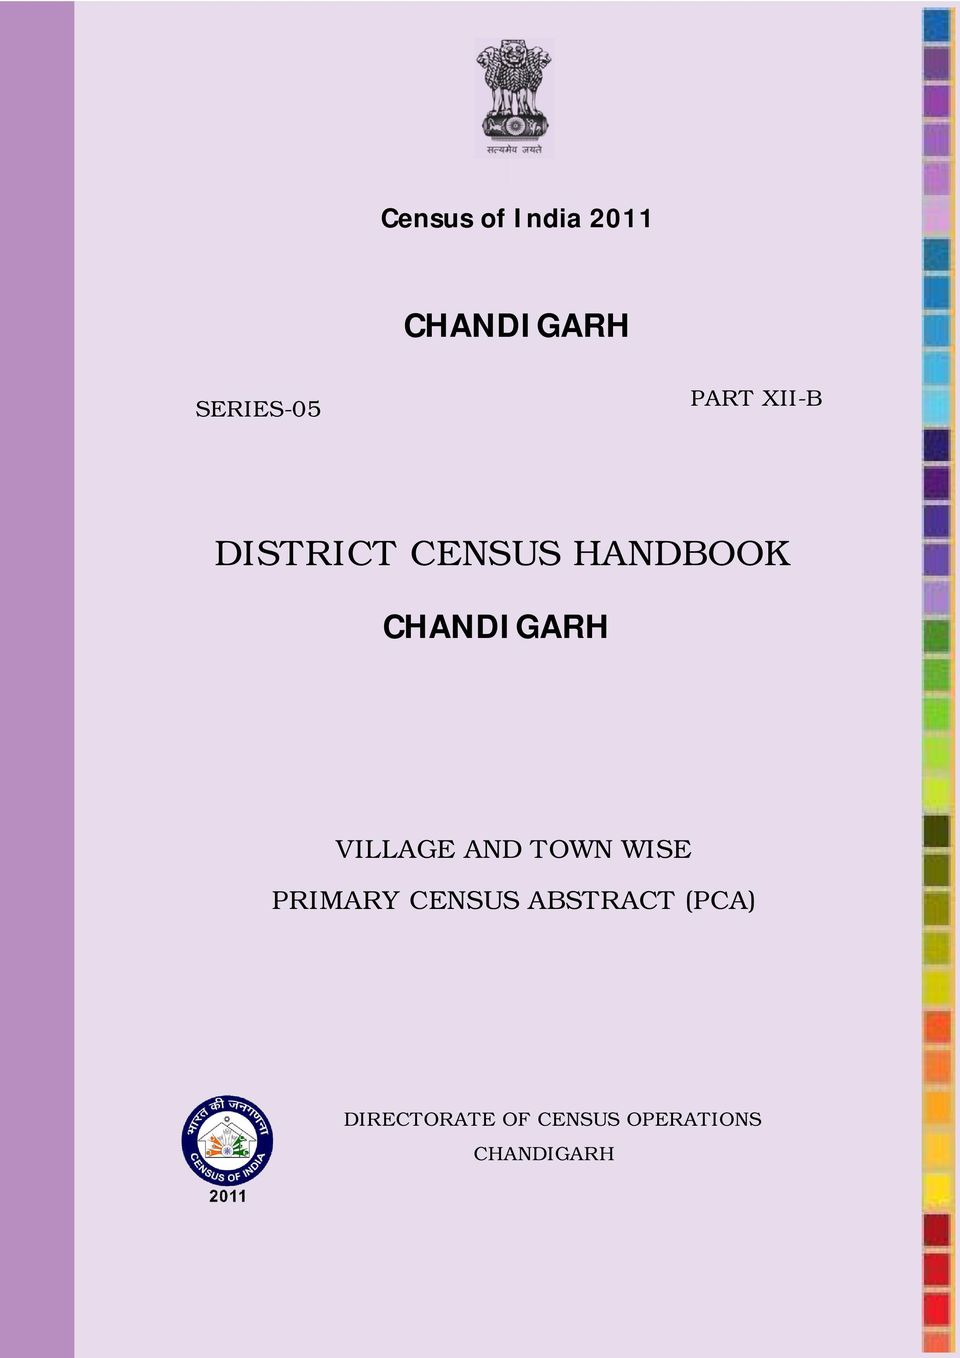 CHANDIGARH VILLAGE AND TOWN WISE PRIMARY